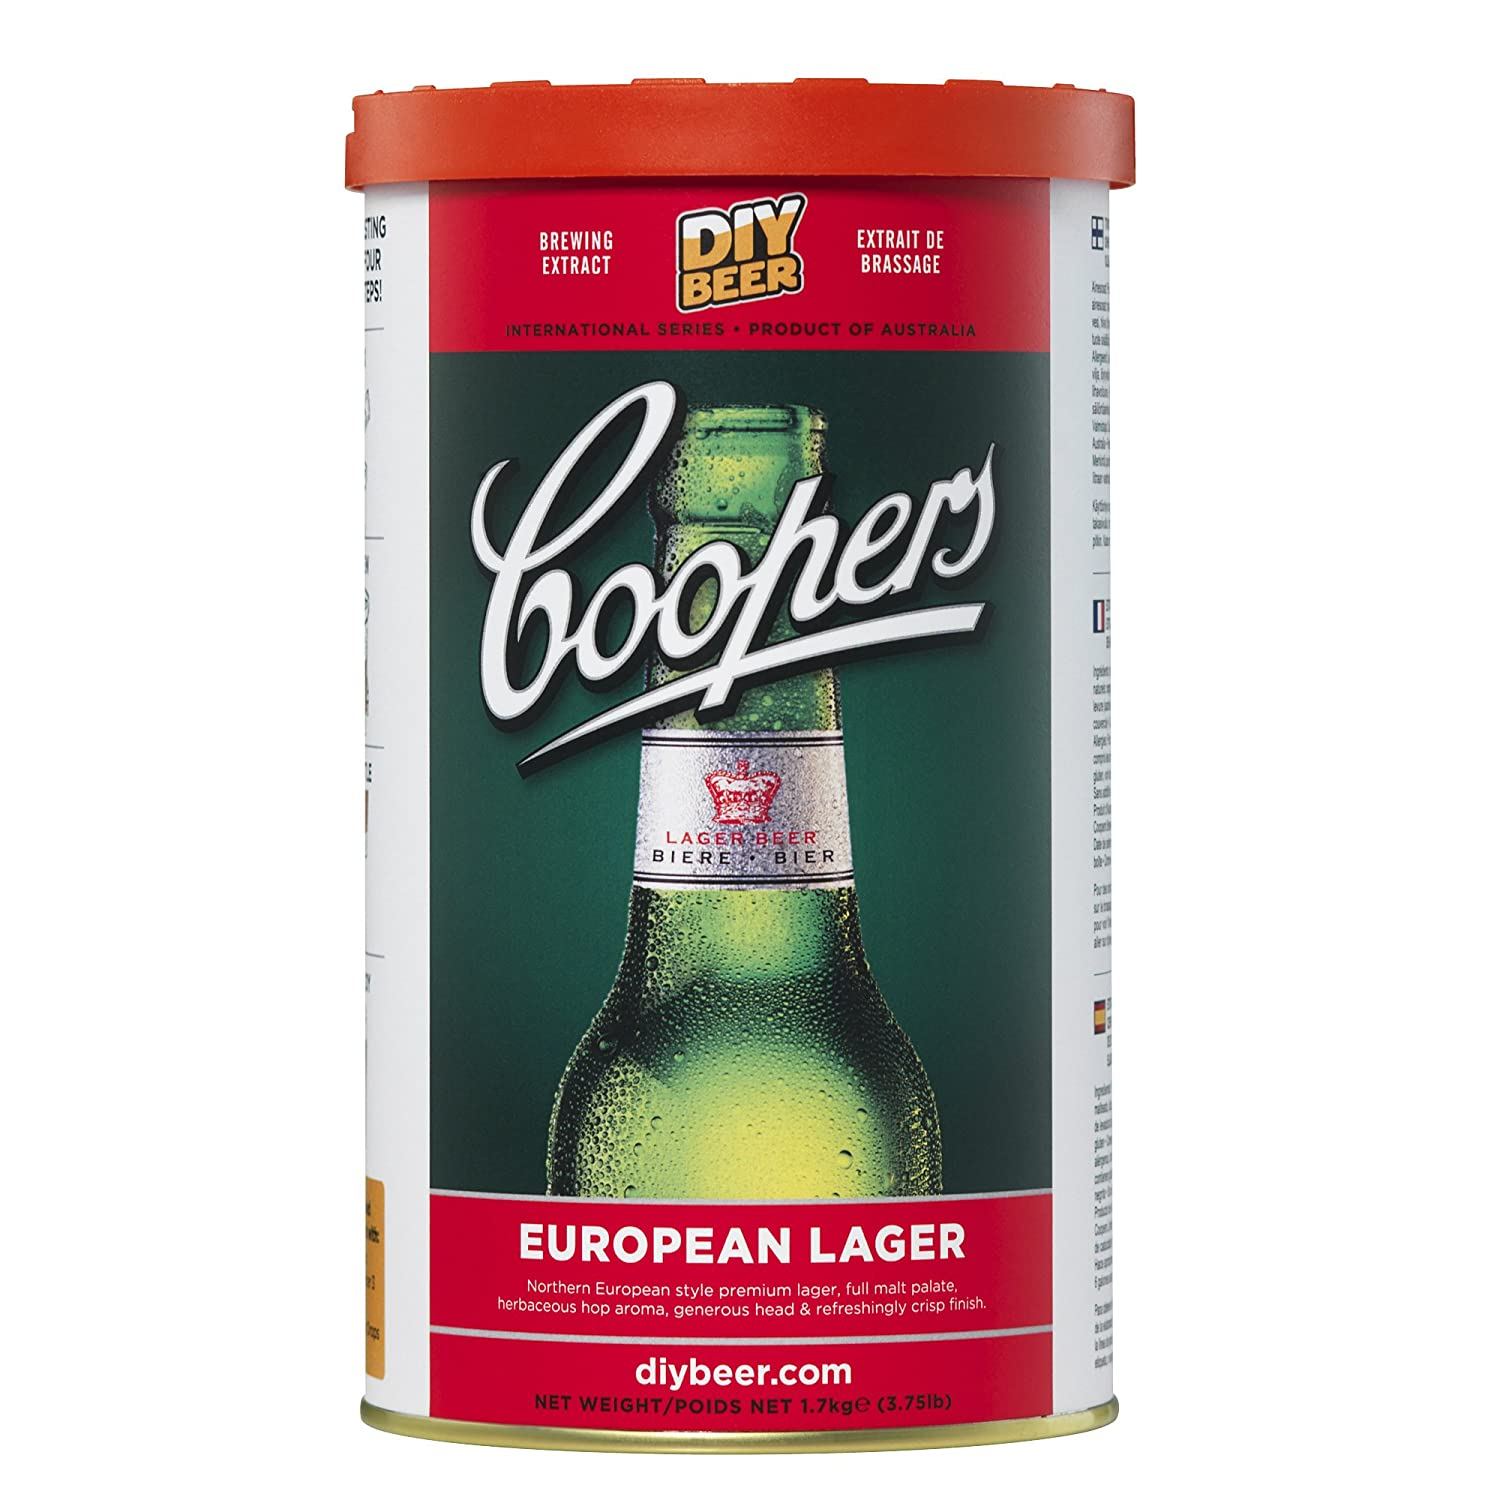 European Lager Coopers 924